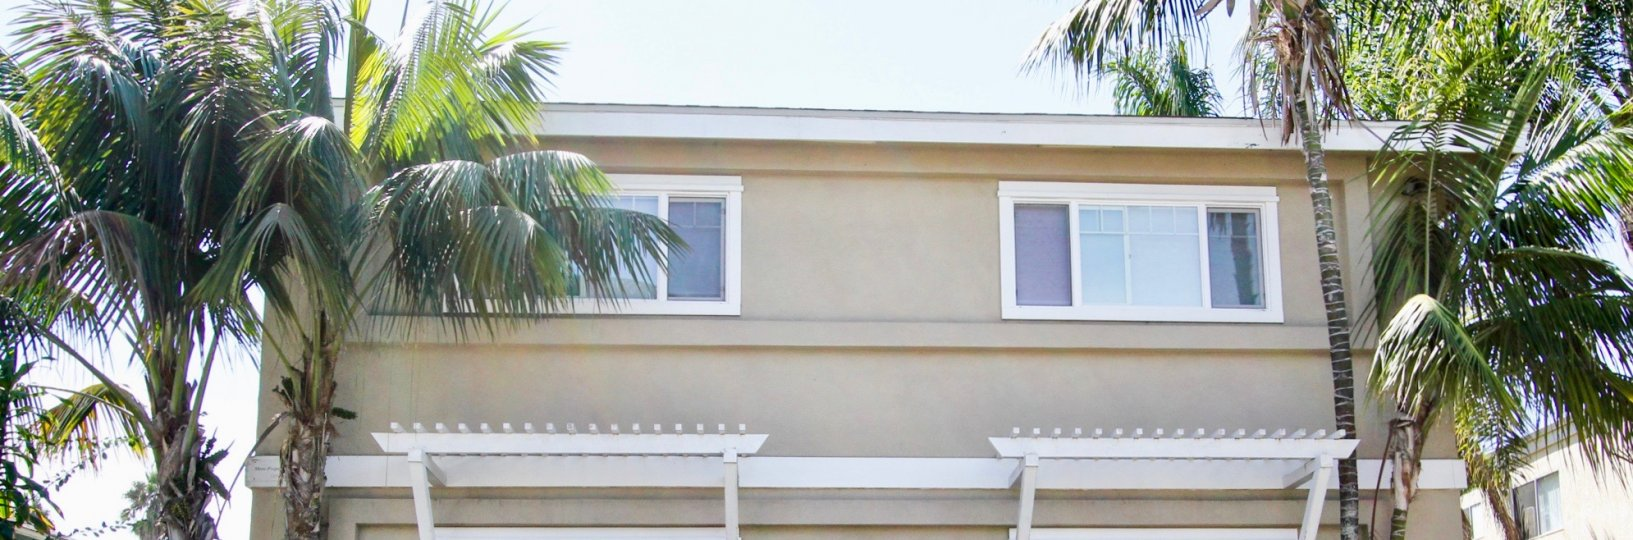 Beautiful and scenic homes surrounded by stately palms at 4841 Del Monte Ave, Ocean Beach, California